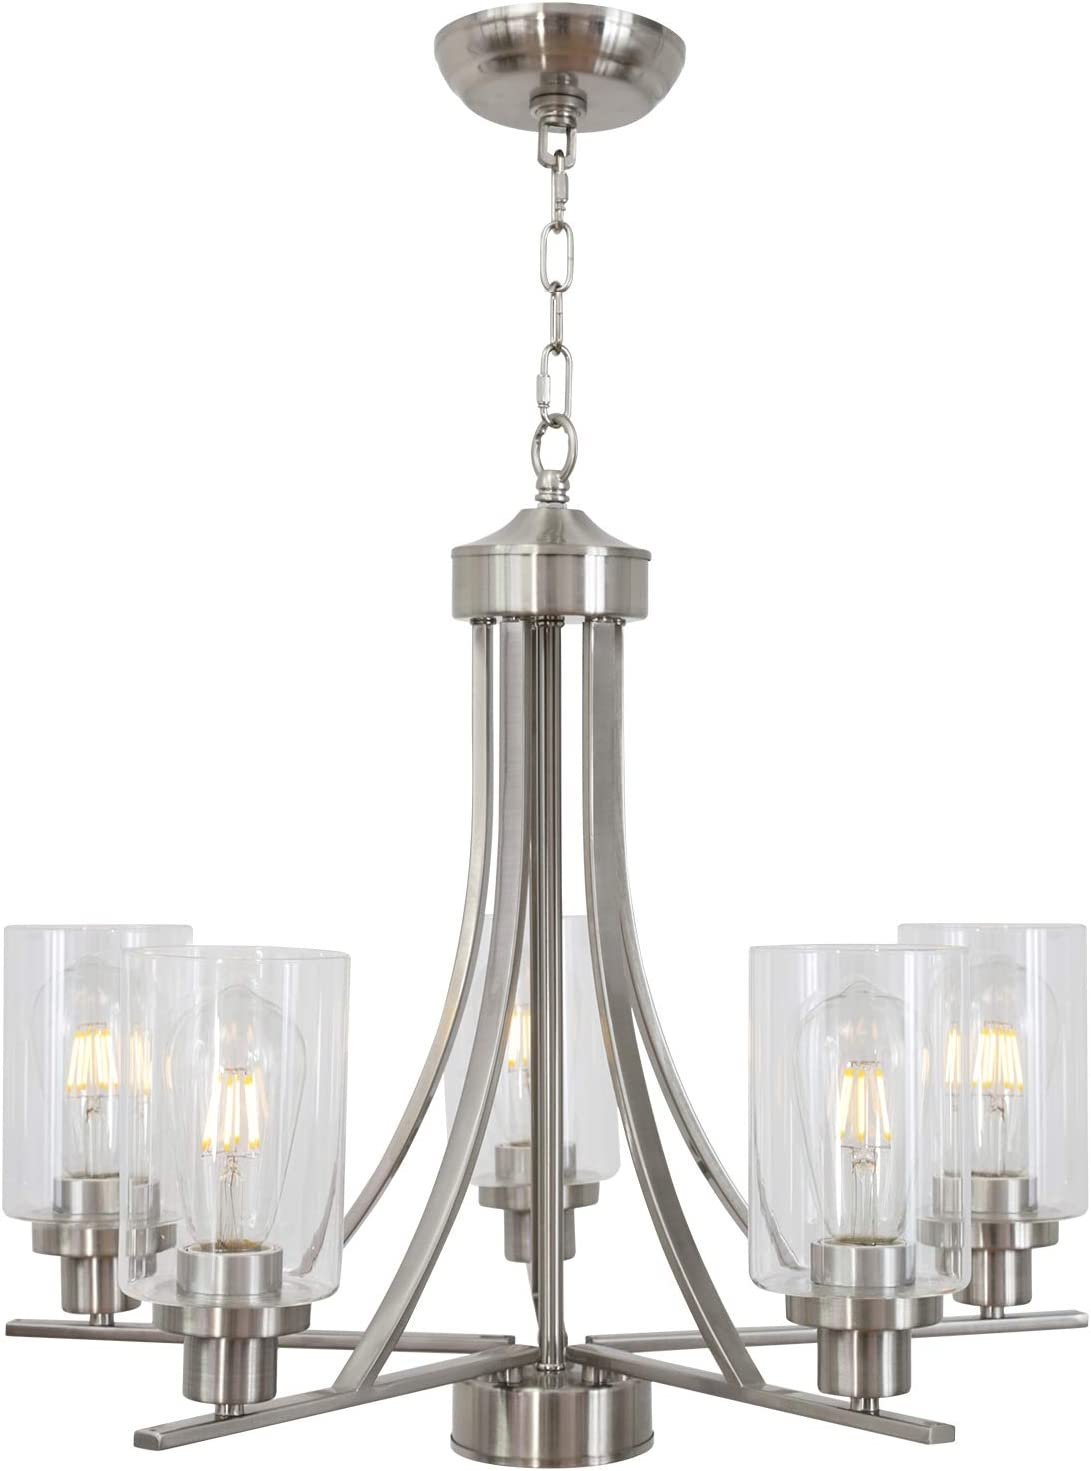 Bonlicht Traditional Chandelier Lighting 5 Light Brushed Nickel Modern Light Fixtures Hanging Pendant Lighting With Clear Glass Shade Classic Ceiling Lights For Kitchen Dining Room Living Room Island Home Improvement